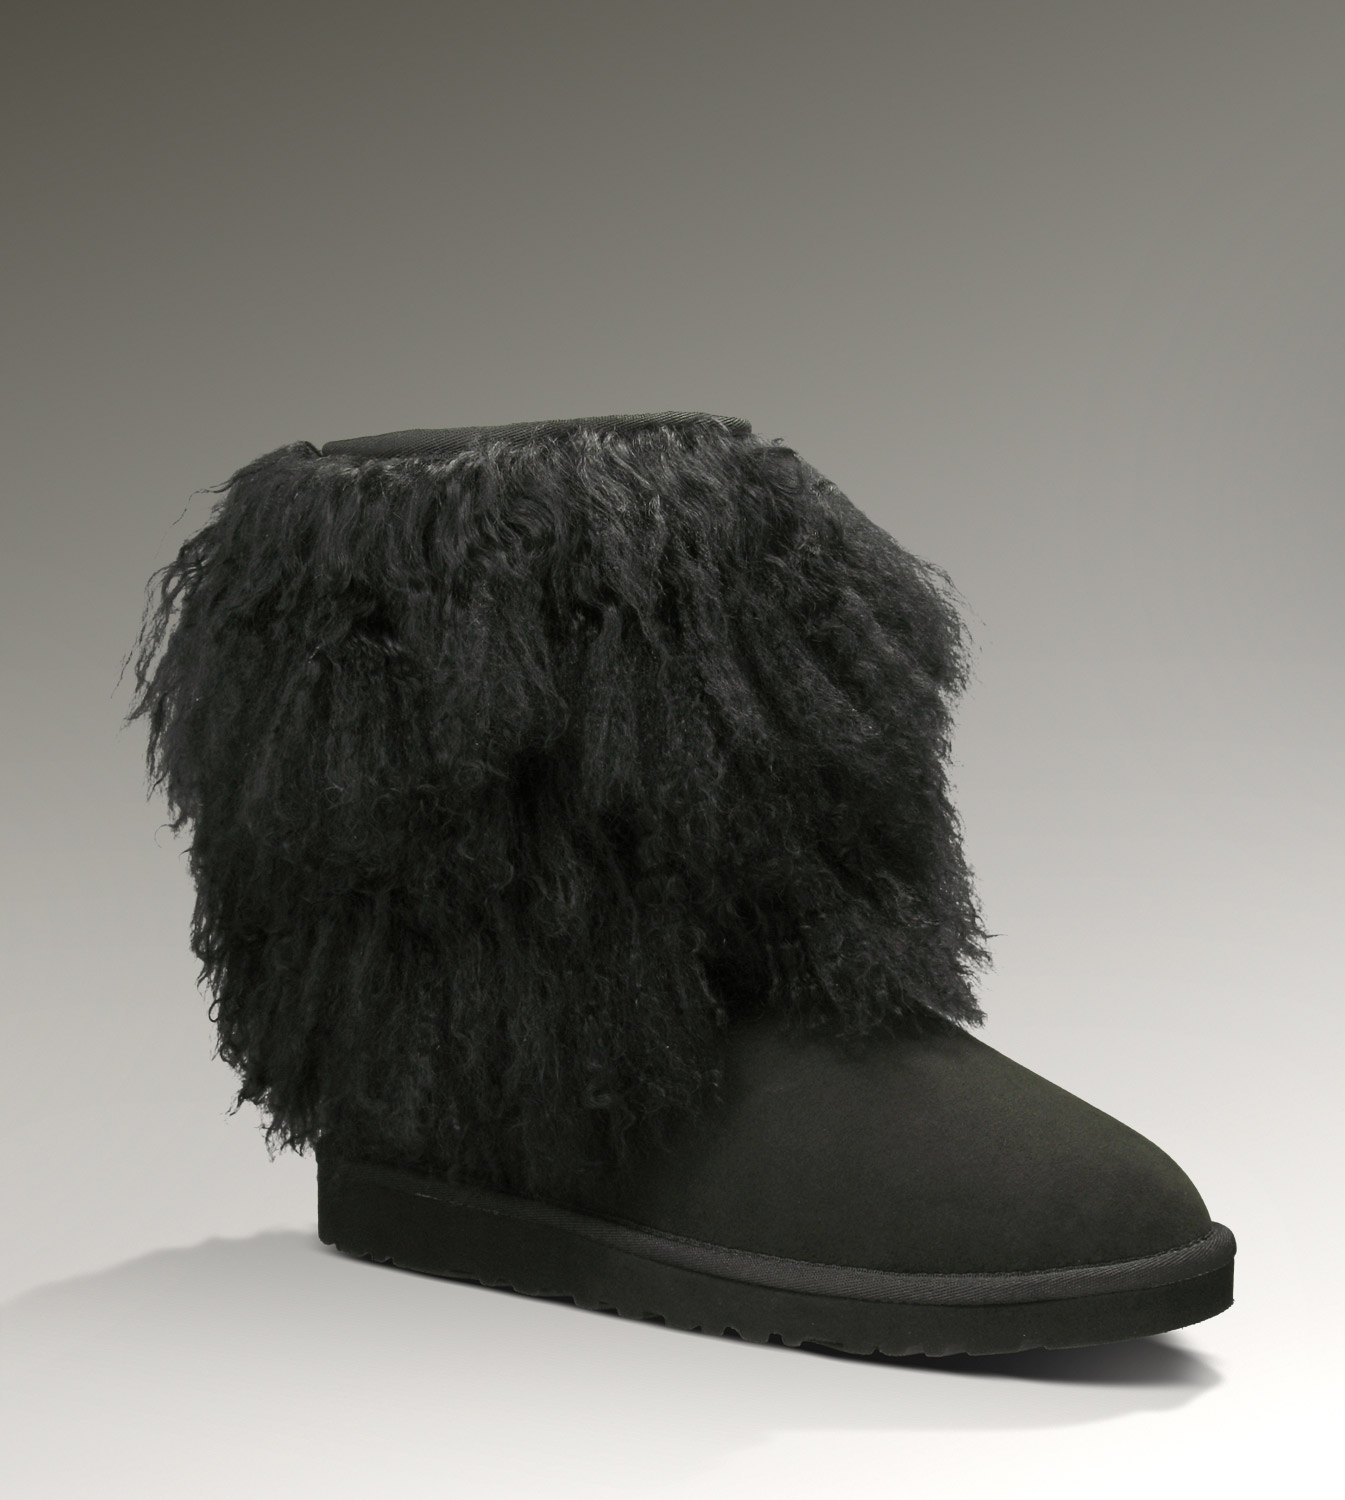 UGG Sheepskin Cuff Short 1875 Black Boots